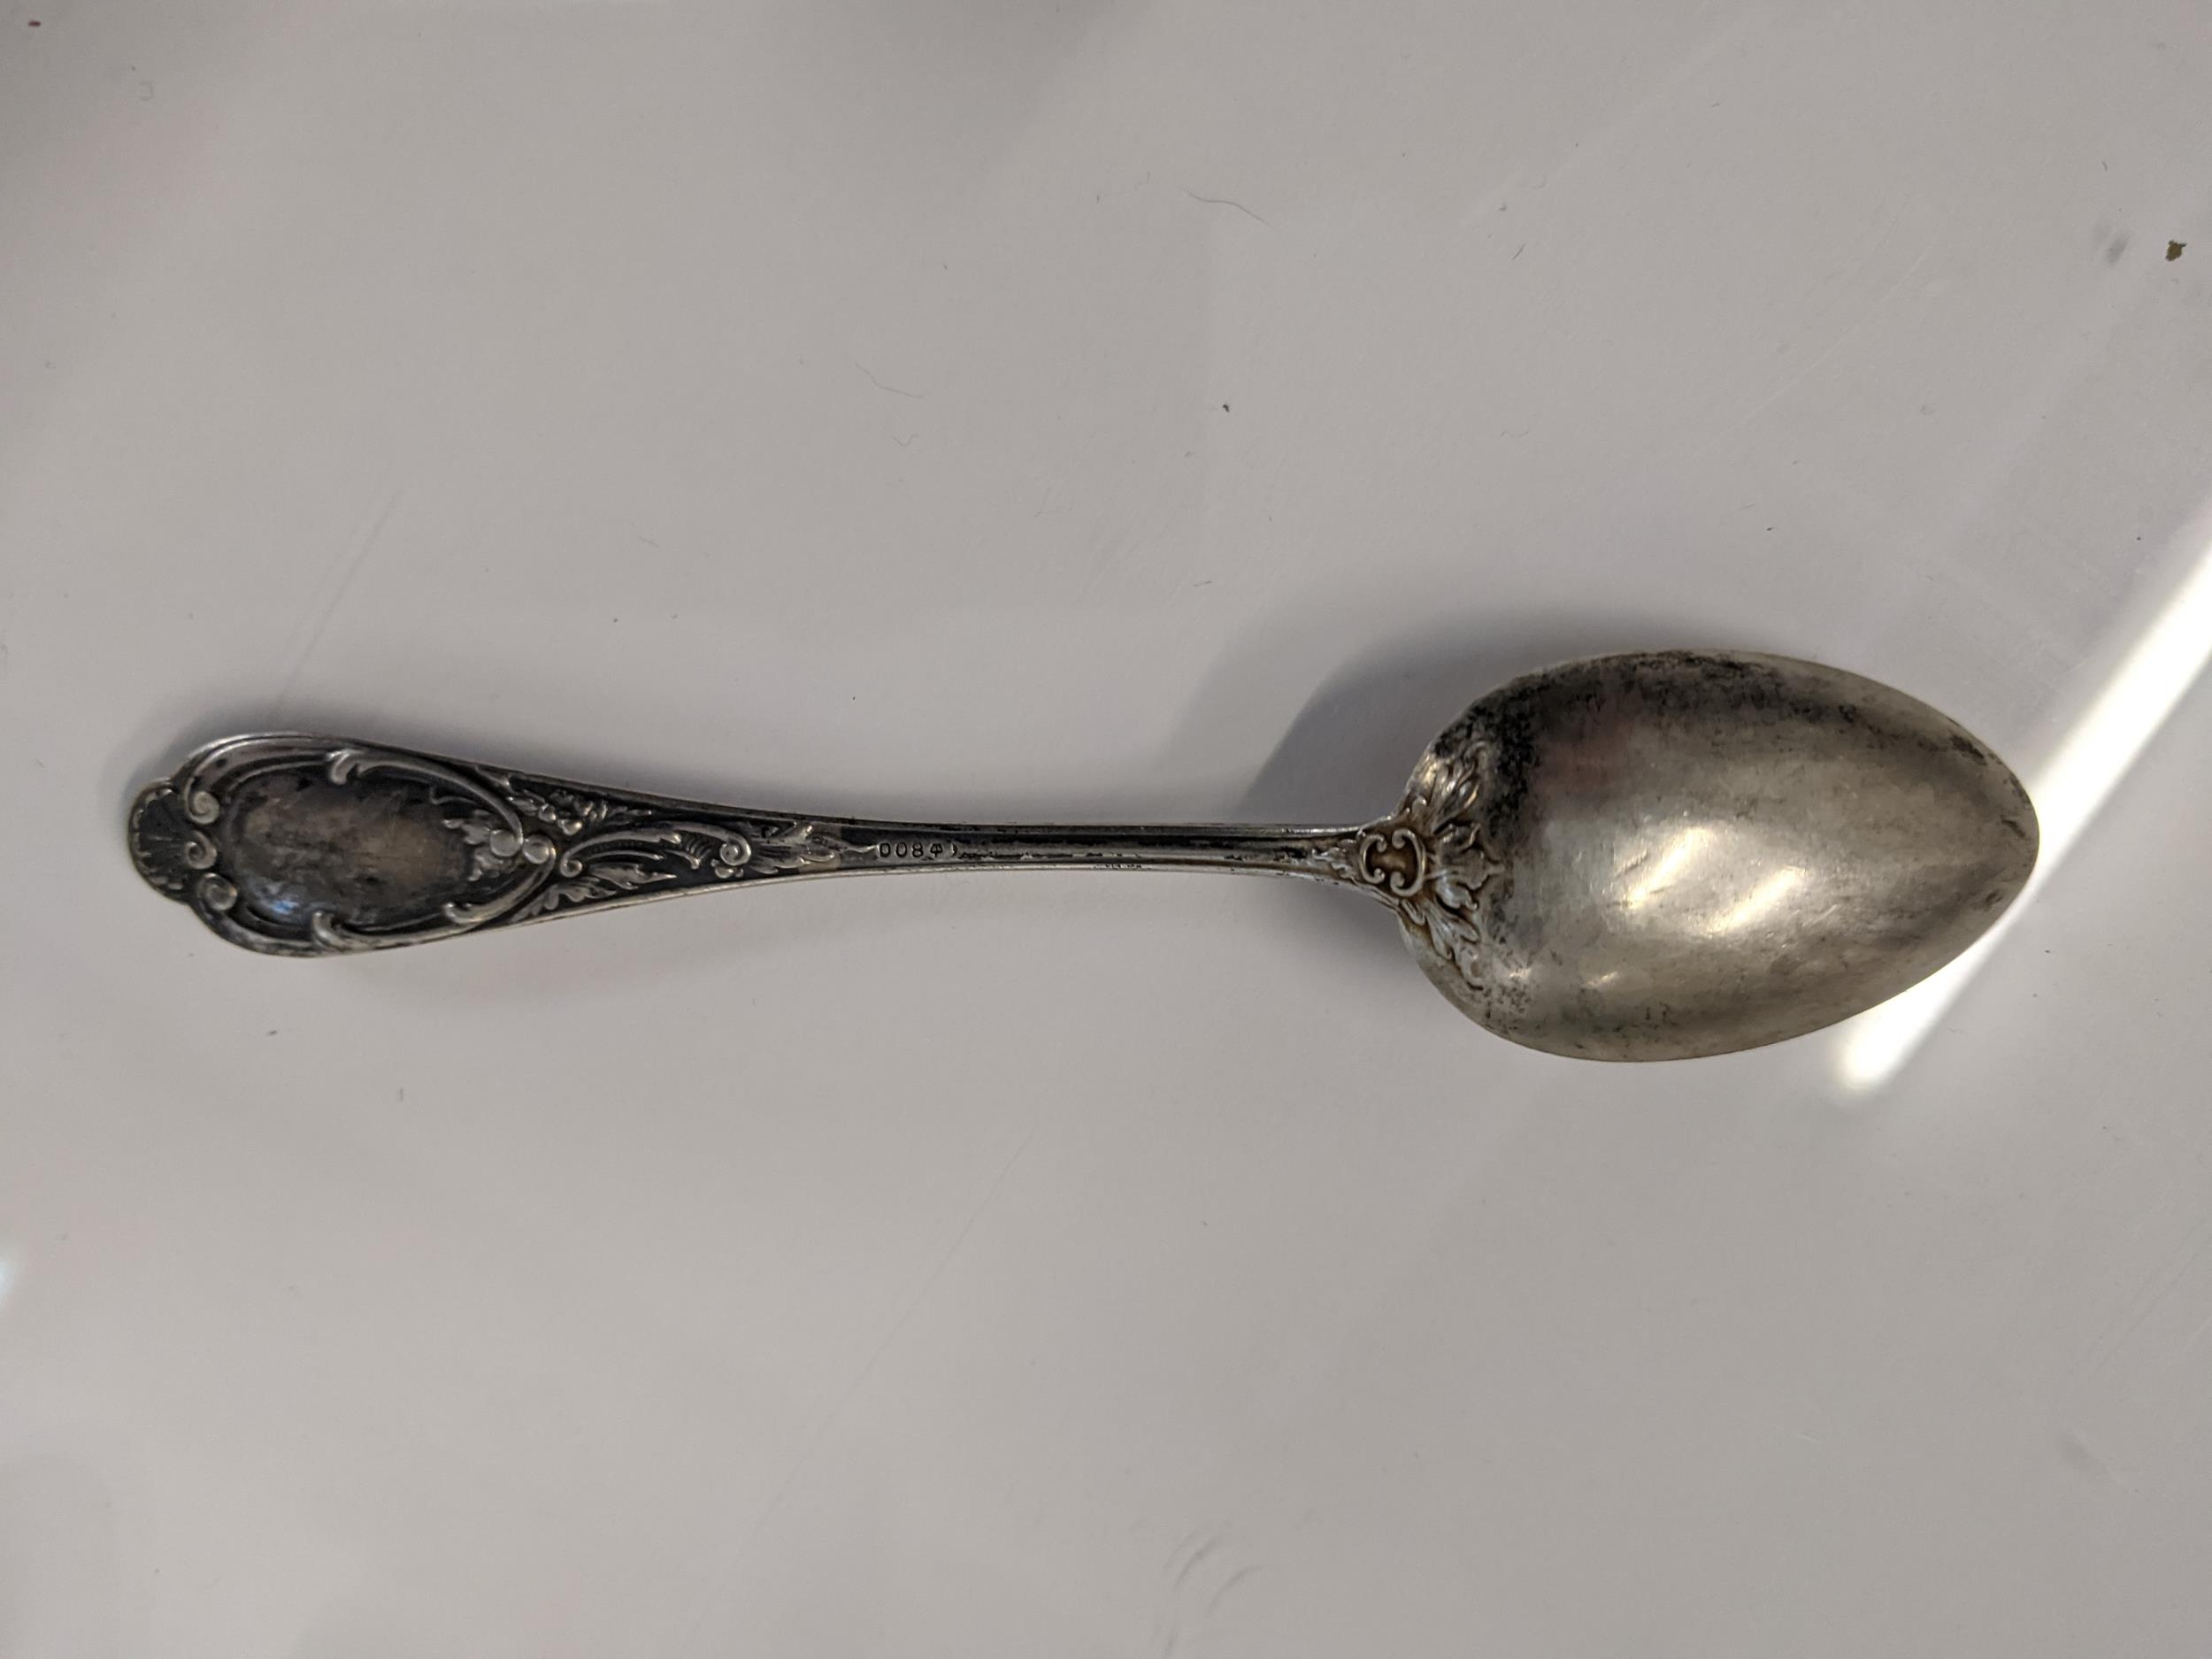 Silver and silver coloured metal to include seven teaspoons stamped 800, two sugar tongs and a - Image 2 of 2